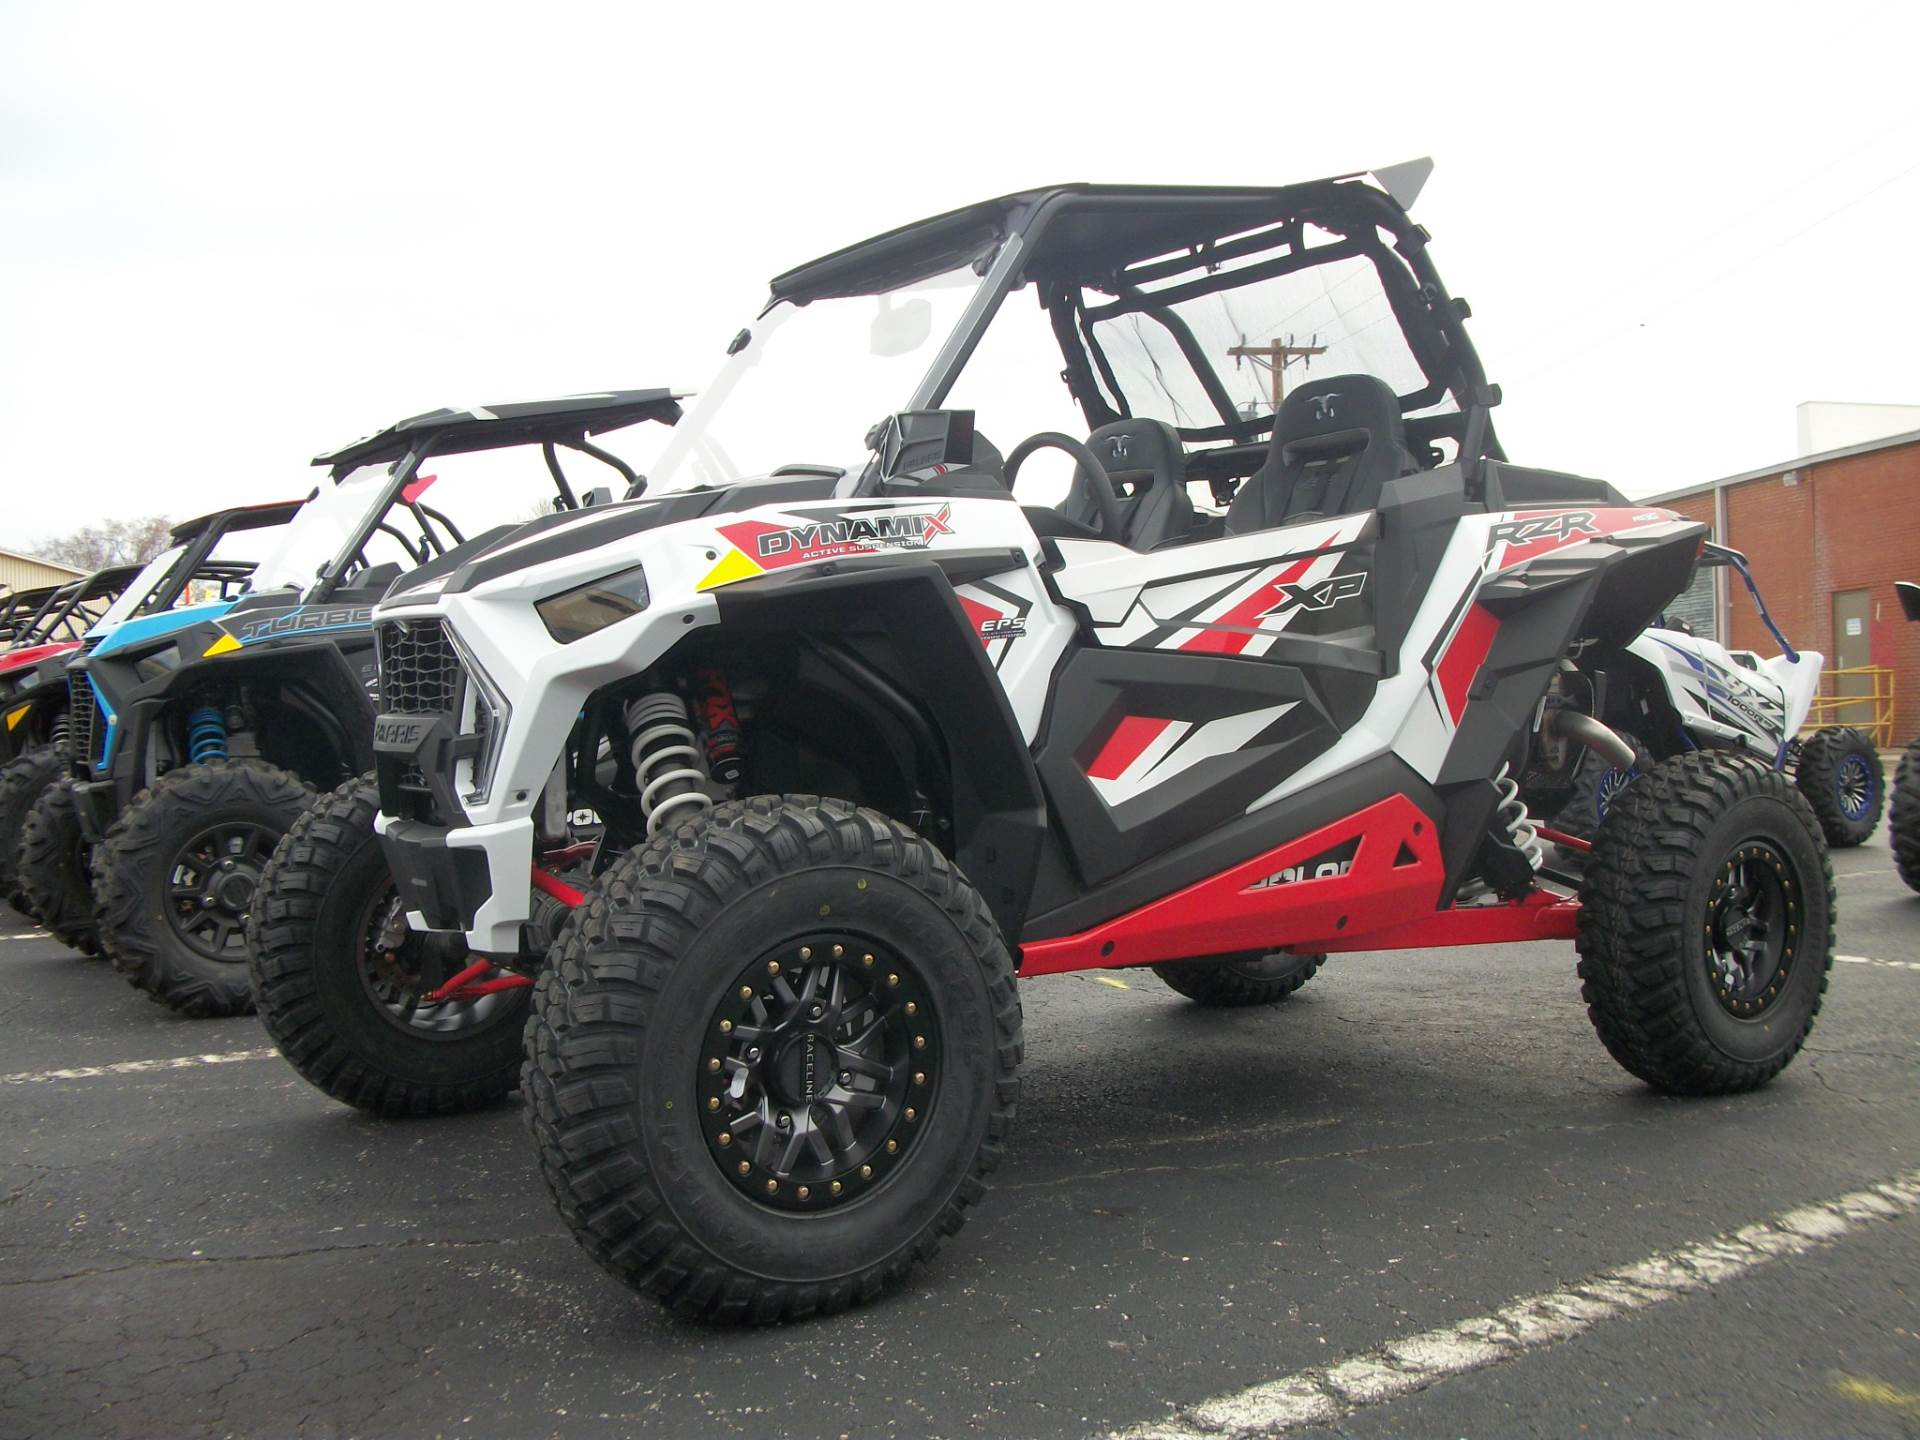 2019 Polaris RZR XP 1000 Dynamix in Statesville, North Carolina - Photo 3